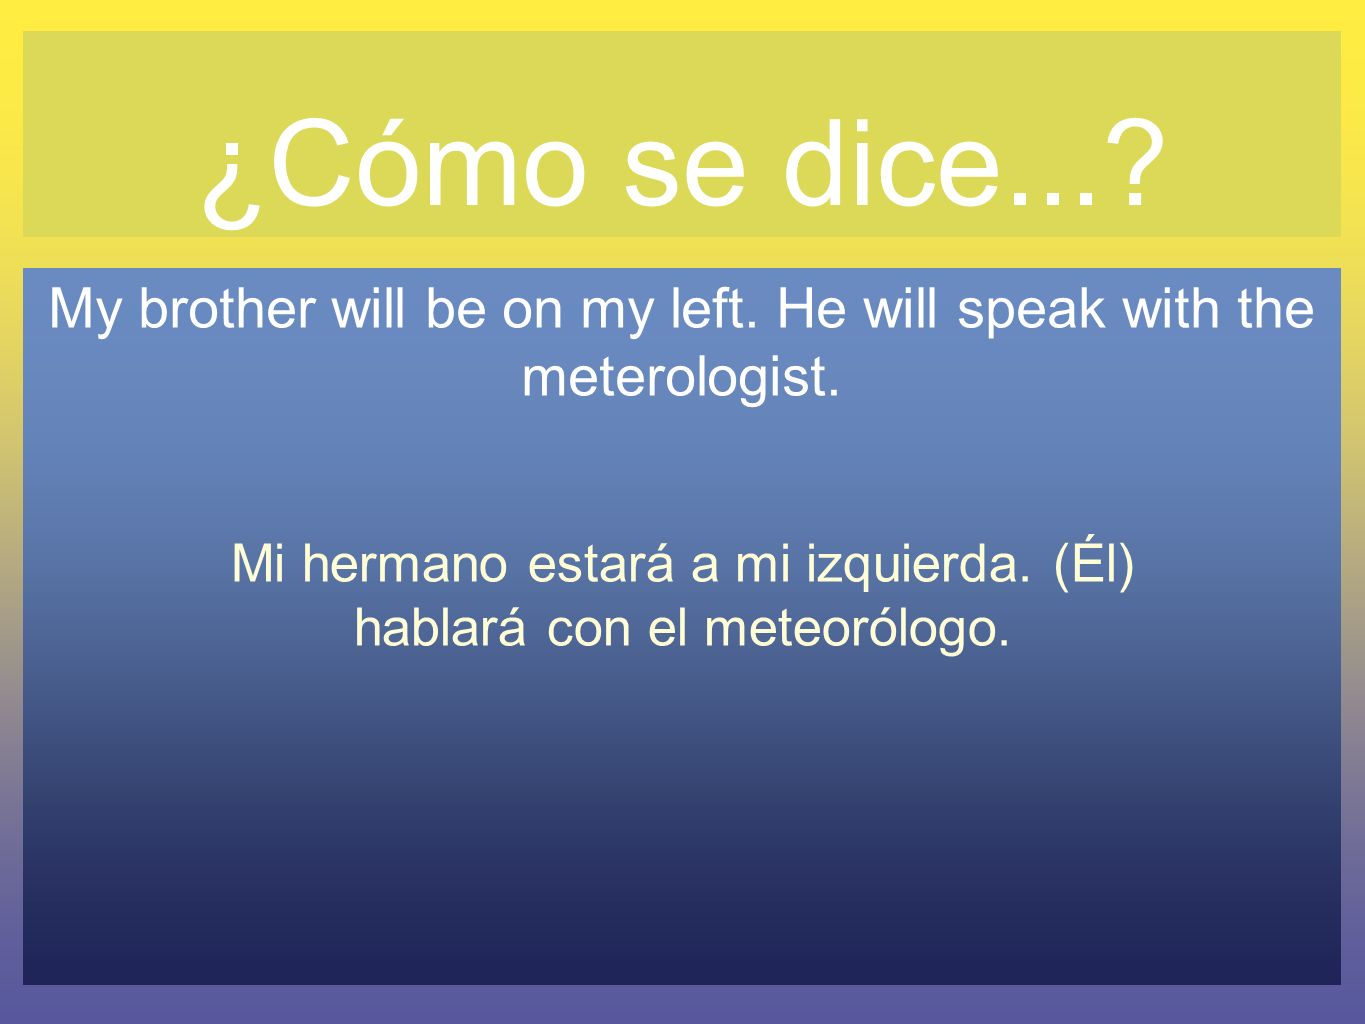 ¿Cómo se dice... My brother will be on my left. He will speak with the meterologist.